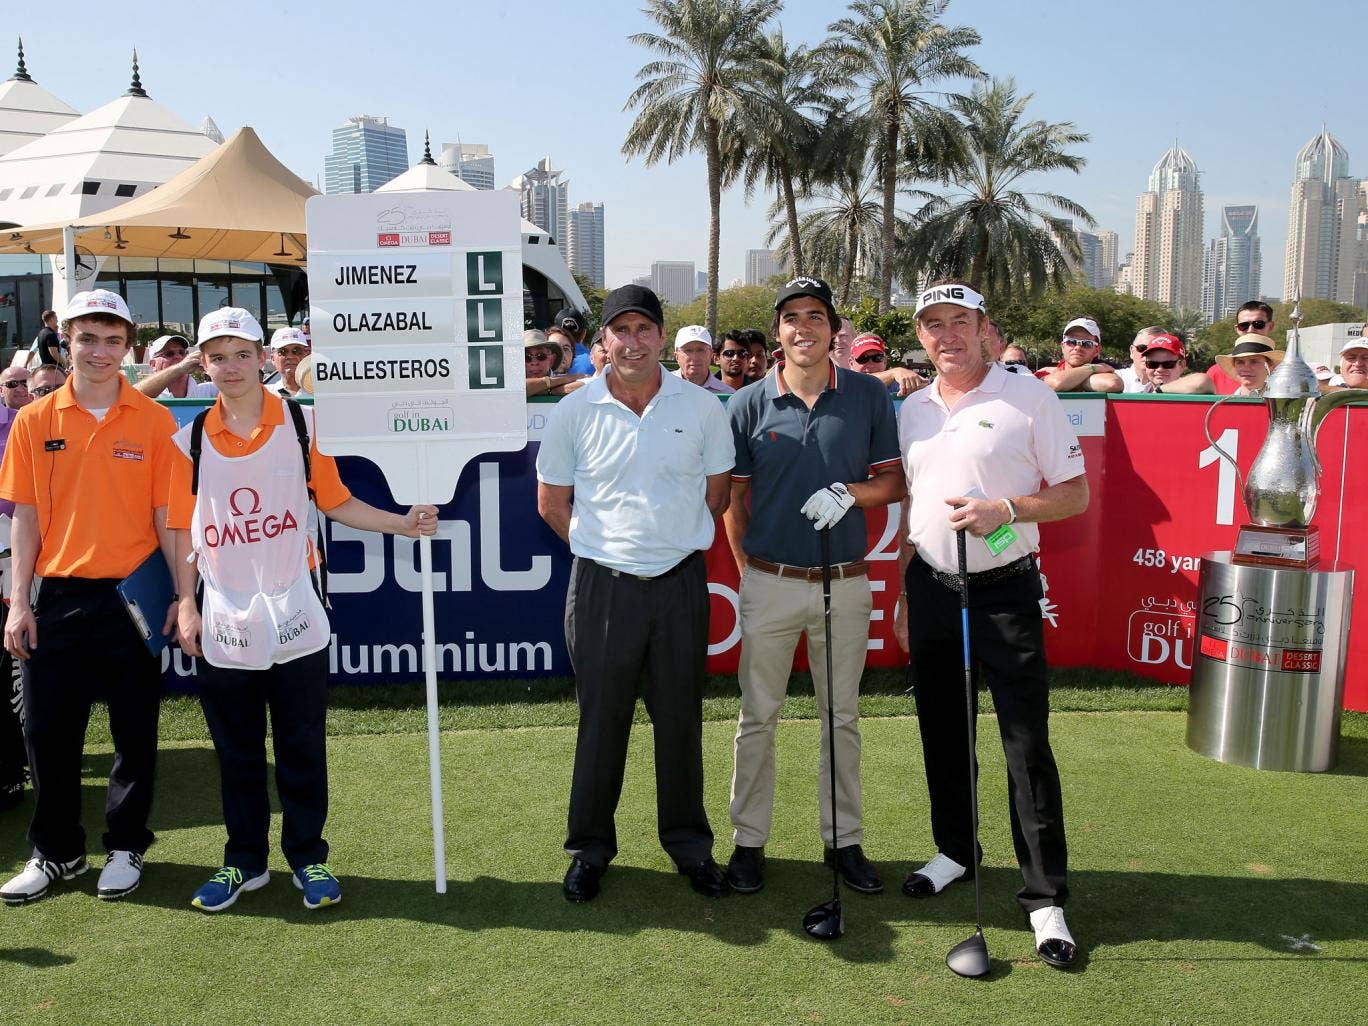 Jose-Maria Olazabal, Javier Ballesteros and Miguel Angel Jimenez pose for a picture before teeing-off at the Dubai Desert Classic